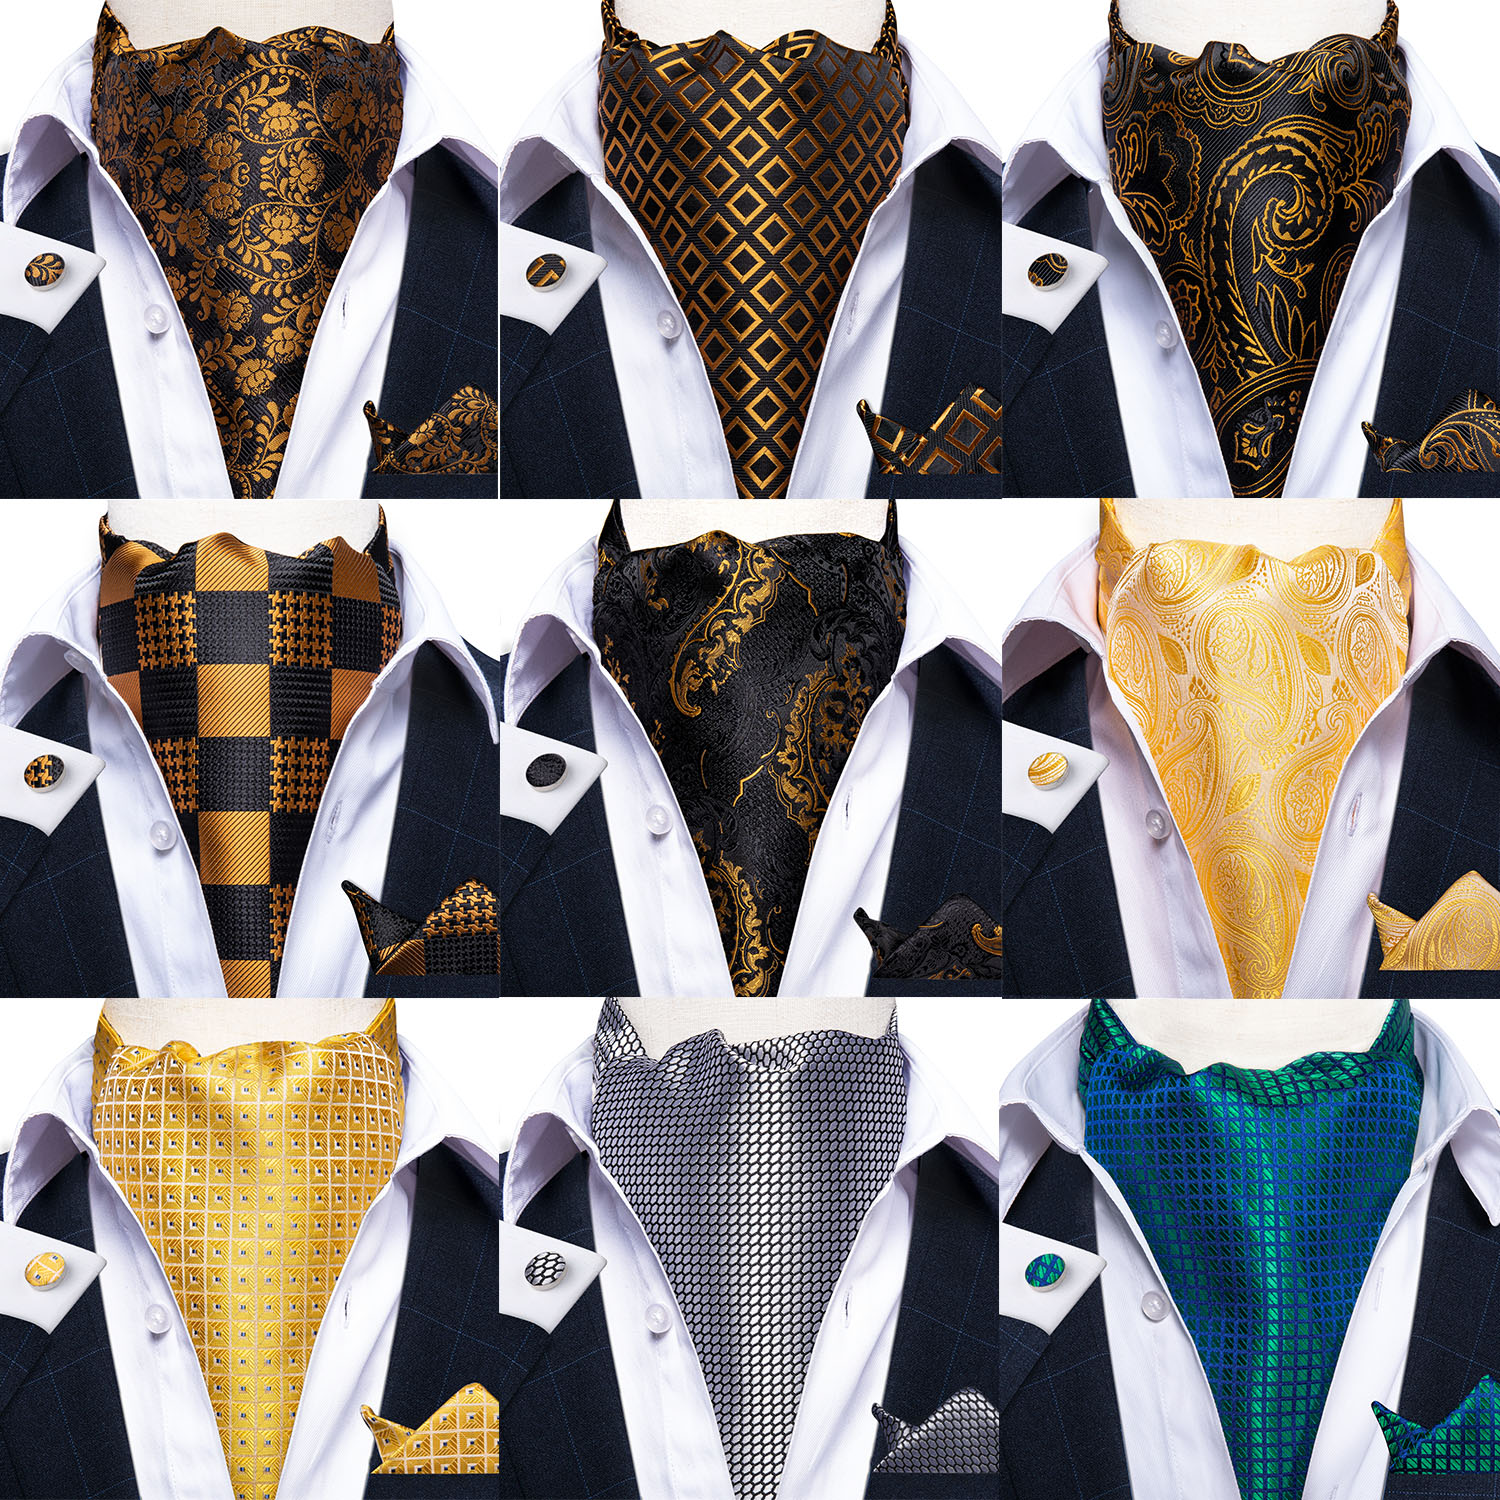 Party Classic Men Silk Cravat Ascot Tie Pocket Square Wedding Floral Paisley Plaid Polka Dot Ascot Necktie Cufflinks Set DiBanGu